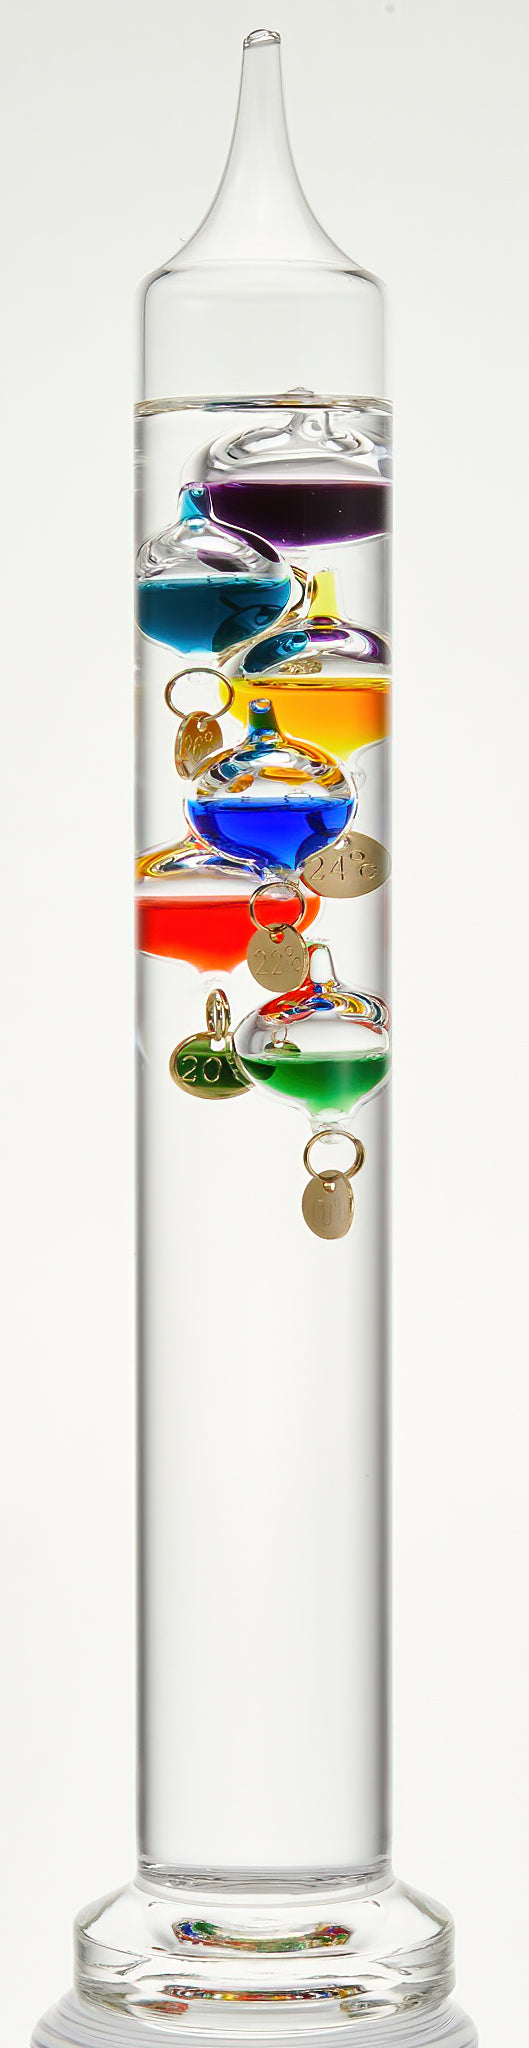 Galileo Thermometer, small